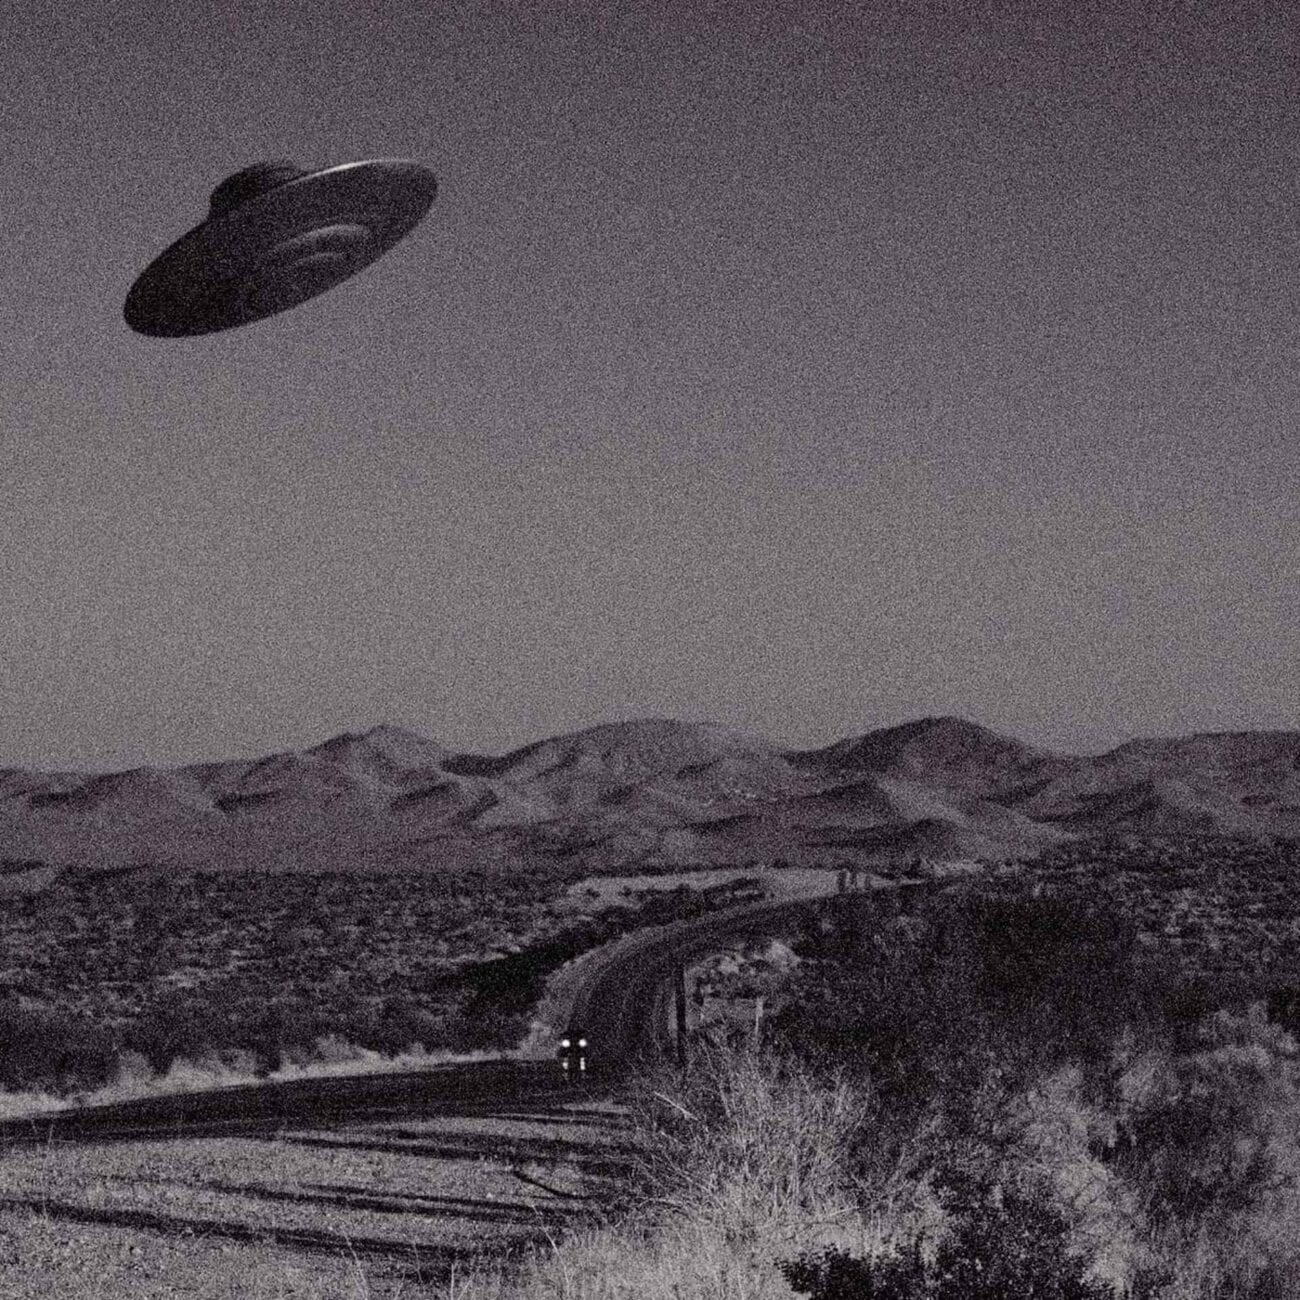 Are you a UFO skeptic? These strange stories will have you reconsidering your stance on whether aliens are real and visiting Earth.